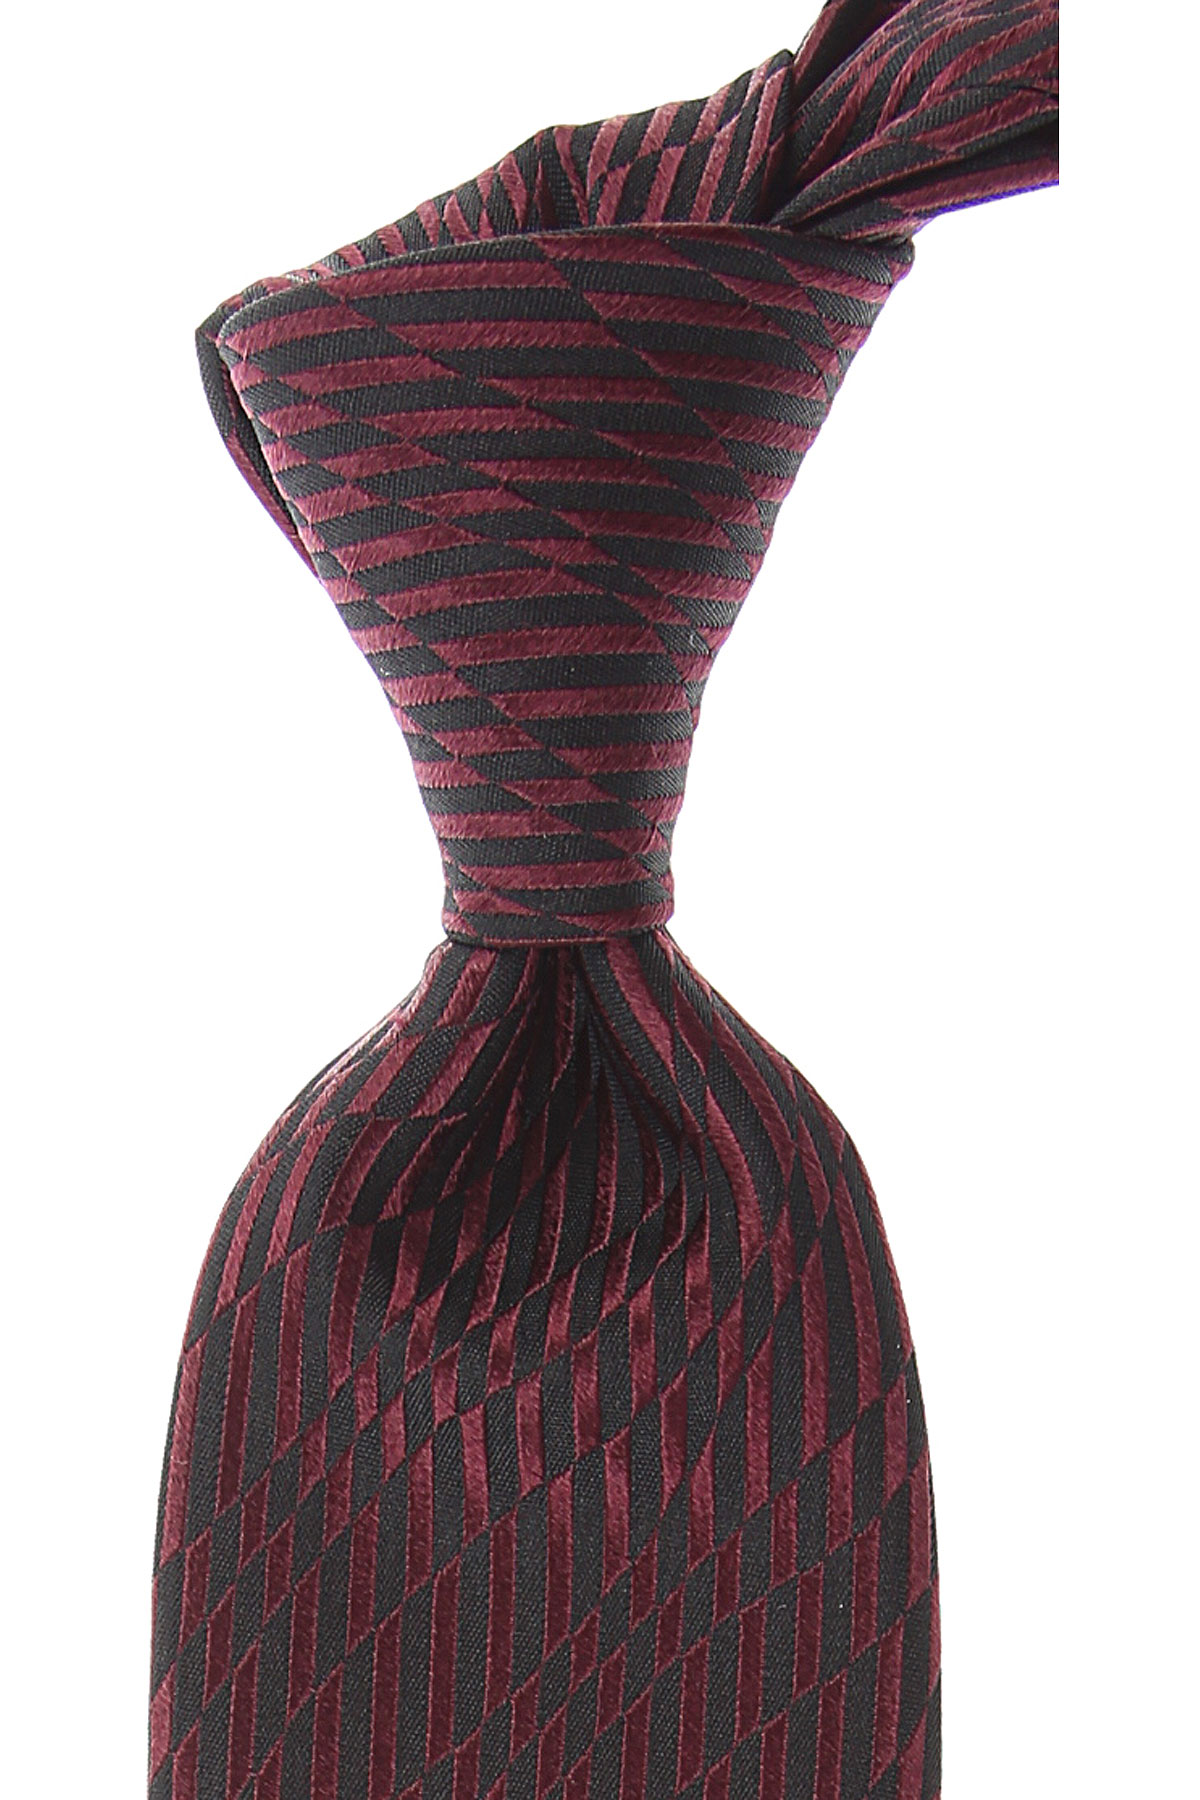 Ermenegildo_Zegna_Ties_On_Sale_Dark_Oxblood_Red_2019